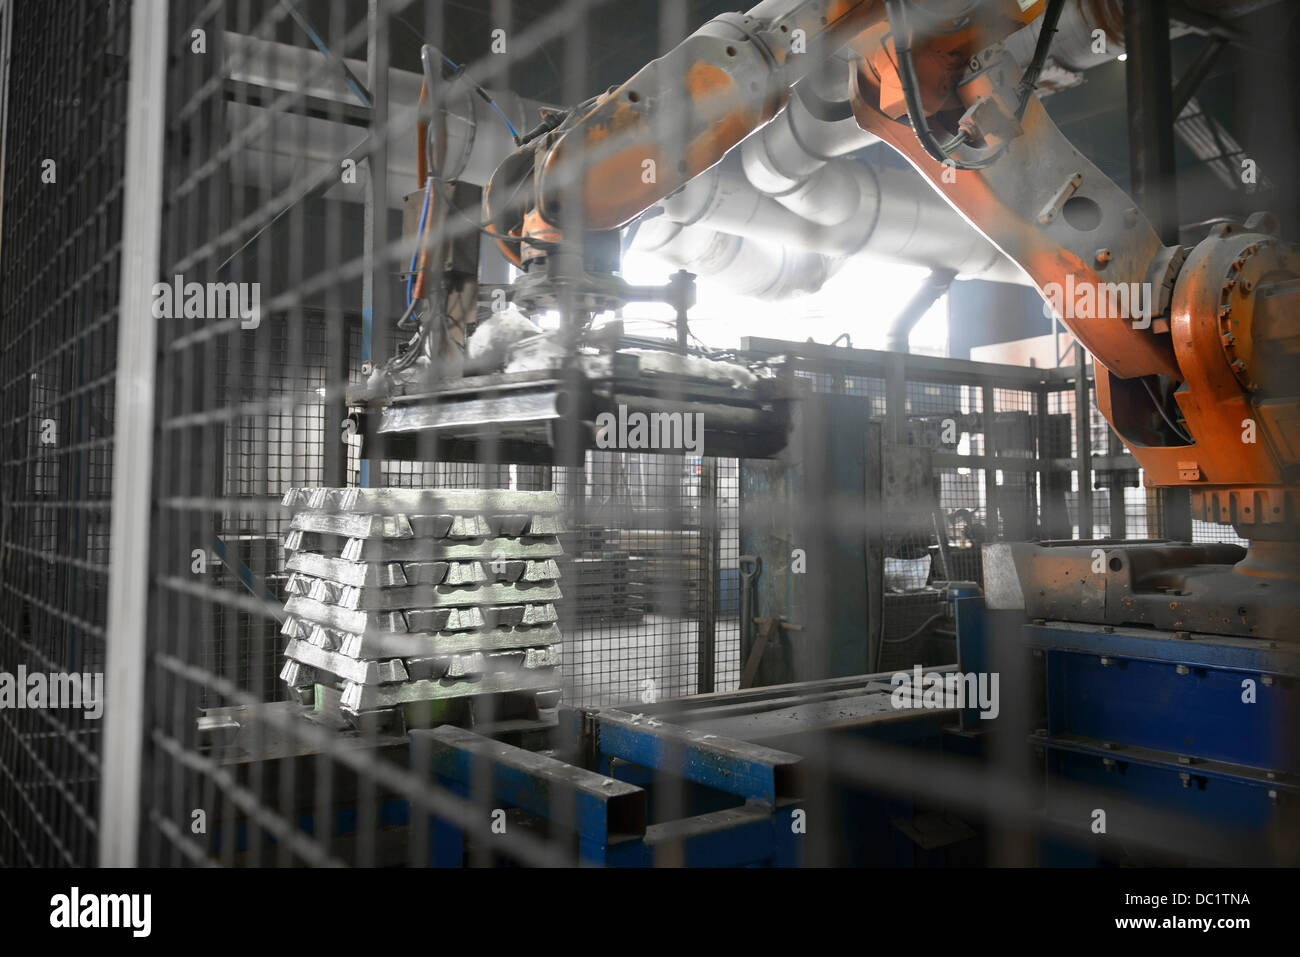 Heavy machinery lifting metal ingots at aluminum recycling plant - Stock Image